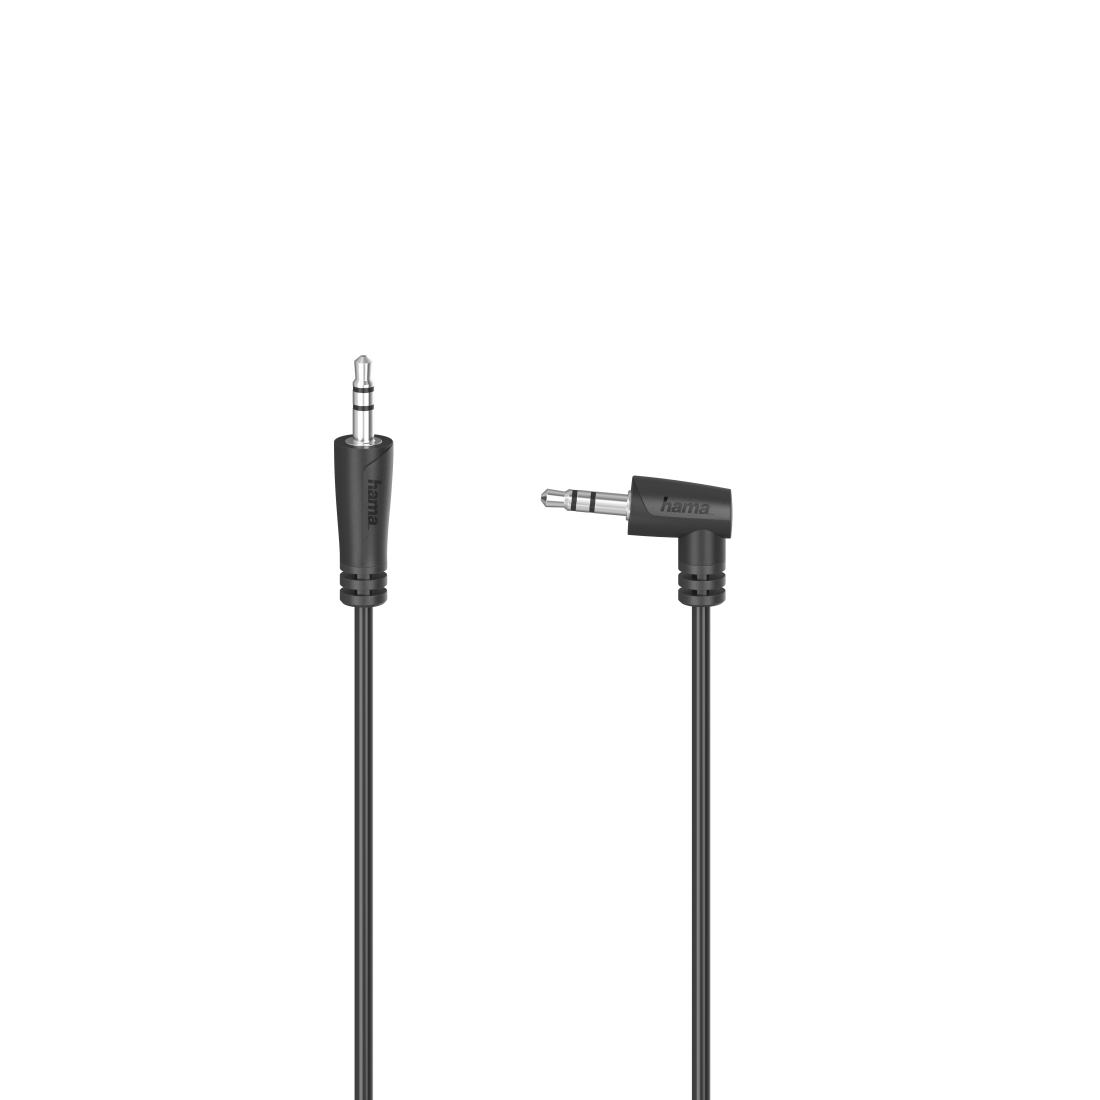 abx High-Res Image - Hama, Audio Cable, 3.5 mm Jack Plug 90° - 3.5 mm Jack Plug, Stereo, 1.5 m